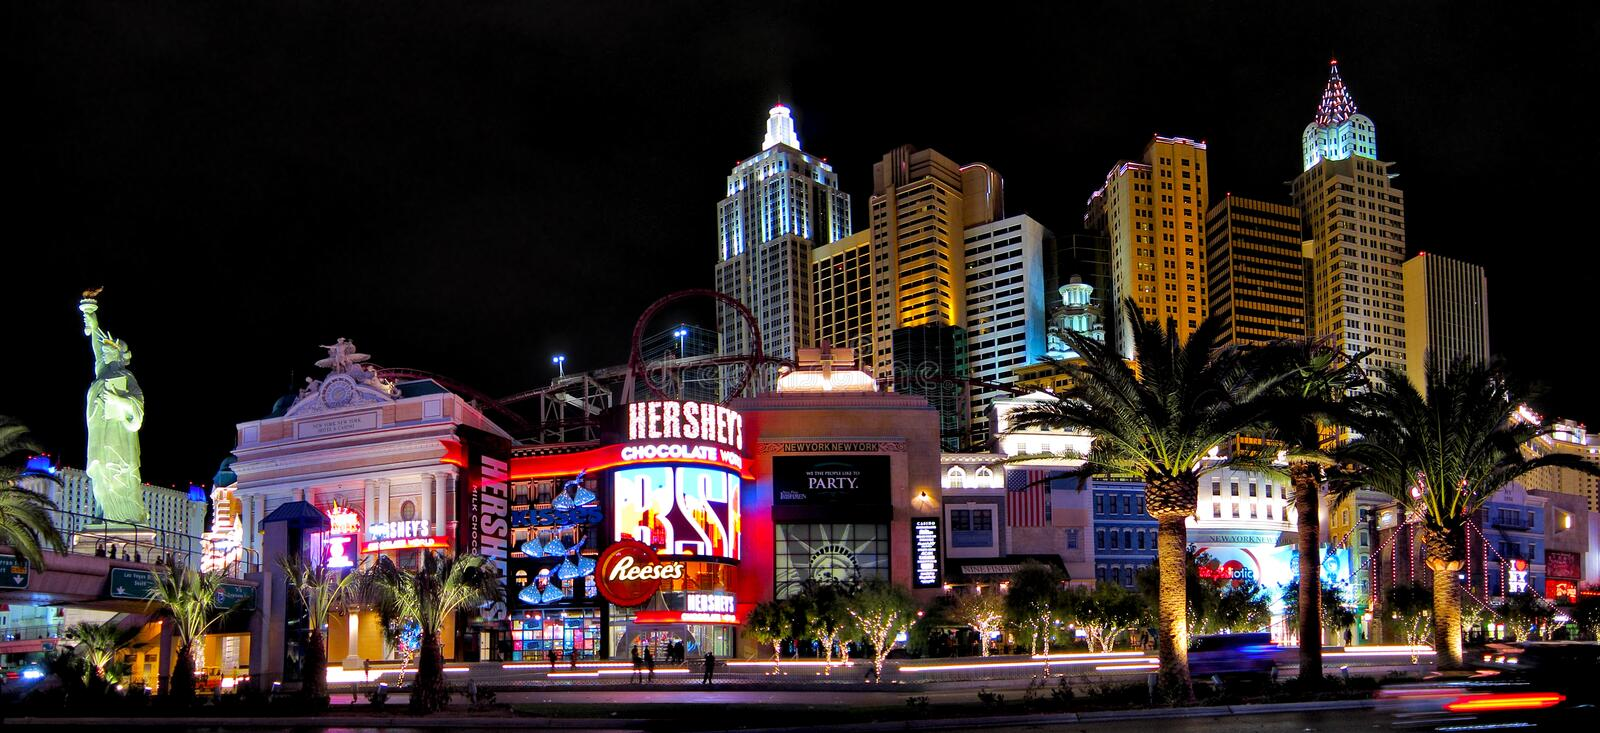 Las Vegas. A view of the New York hotel in Las Vegas